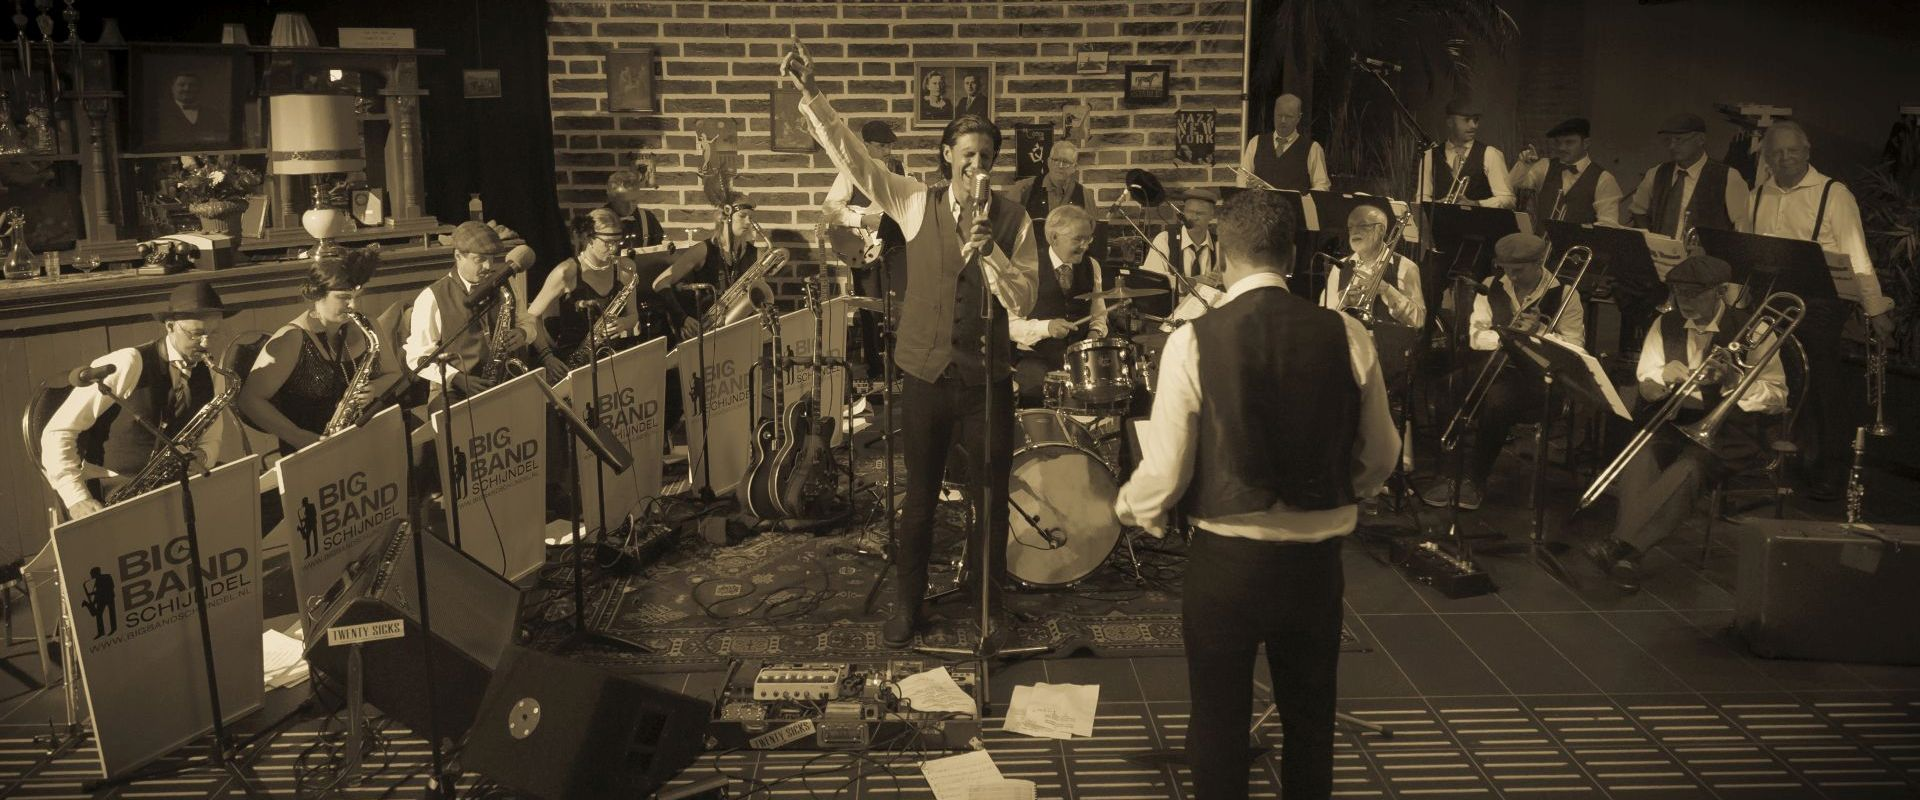 Big Band Schijndel – Vintage Swing Orchestra